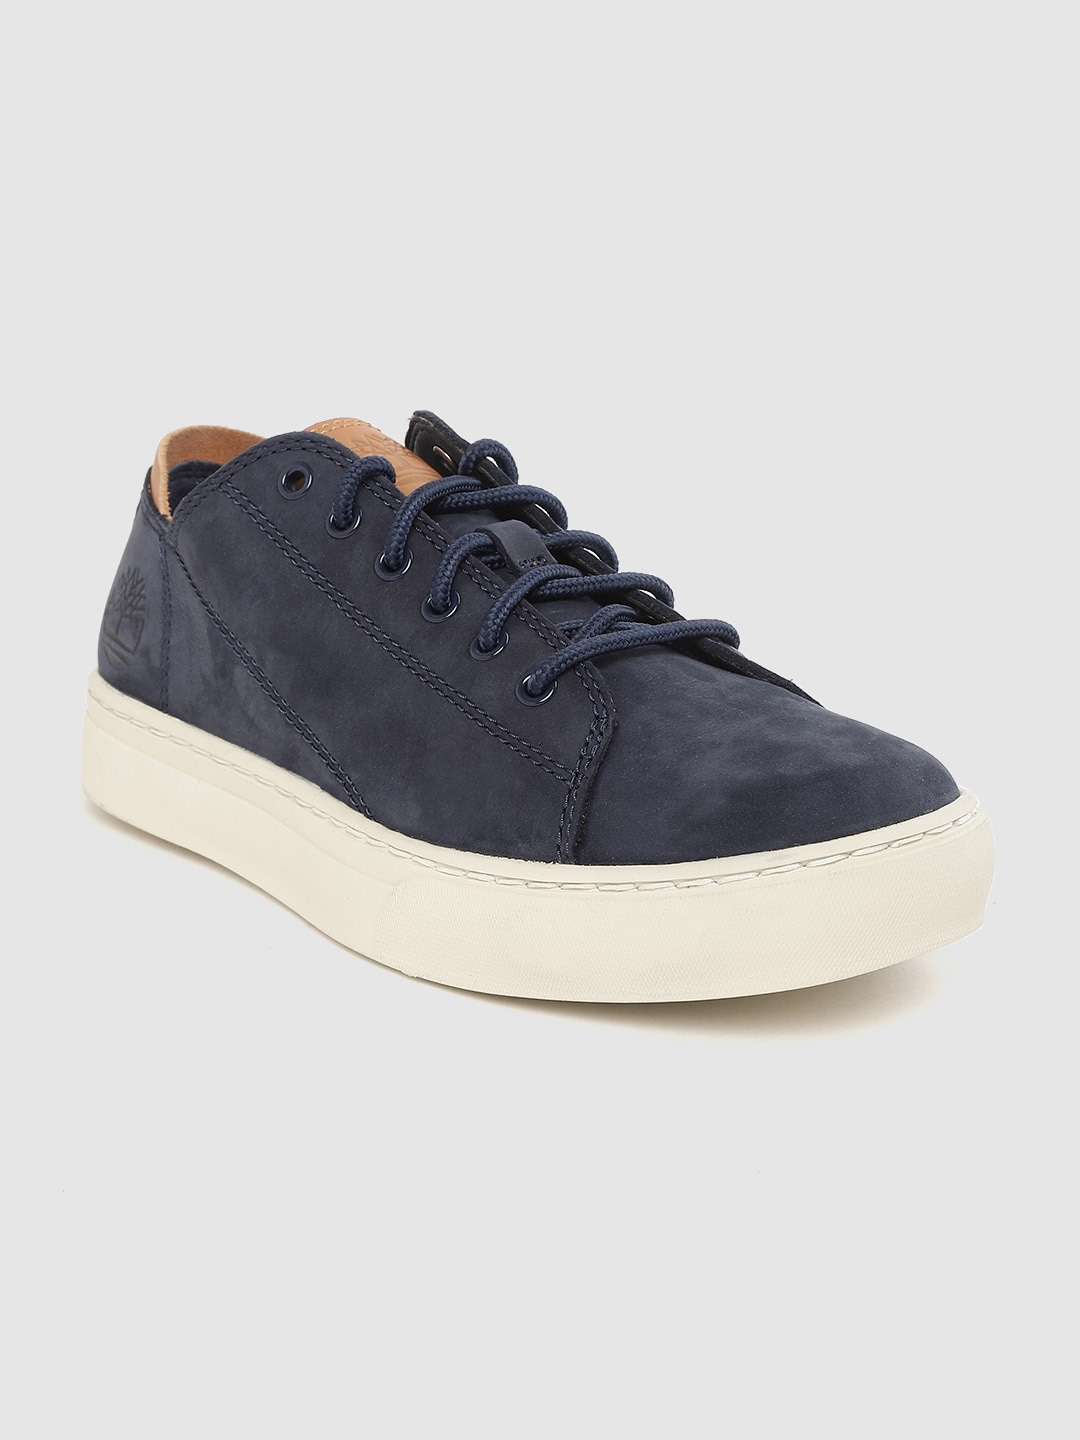 Navy Blue Adventure 2.0 Cupsole Modern Oxford Nubuck Sneakers